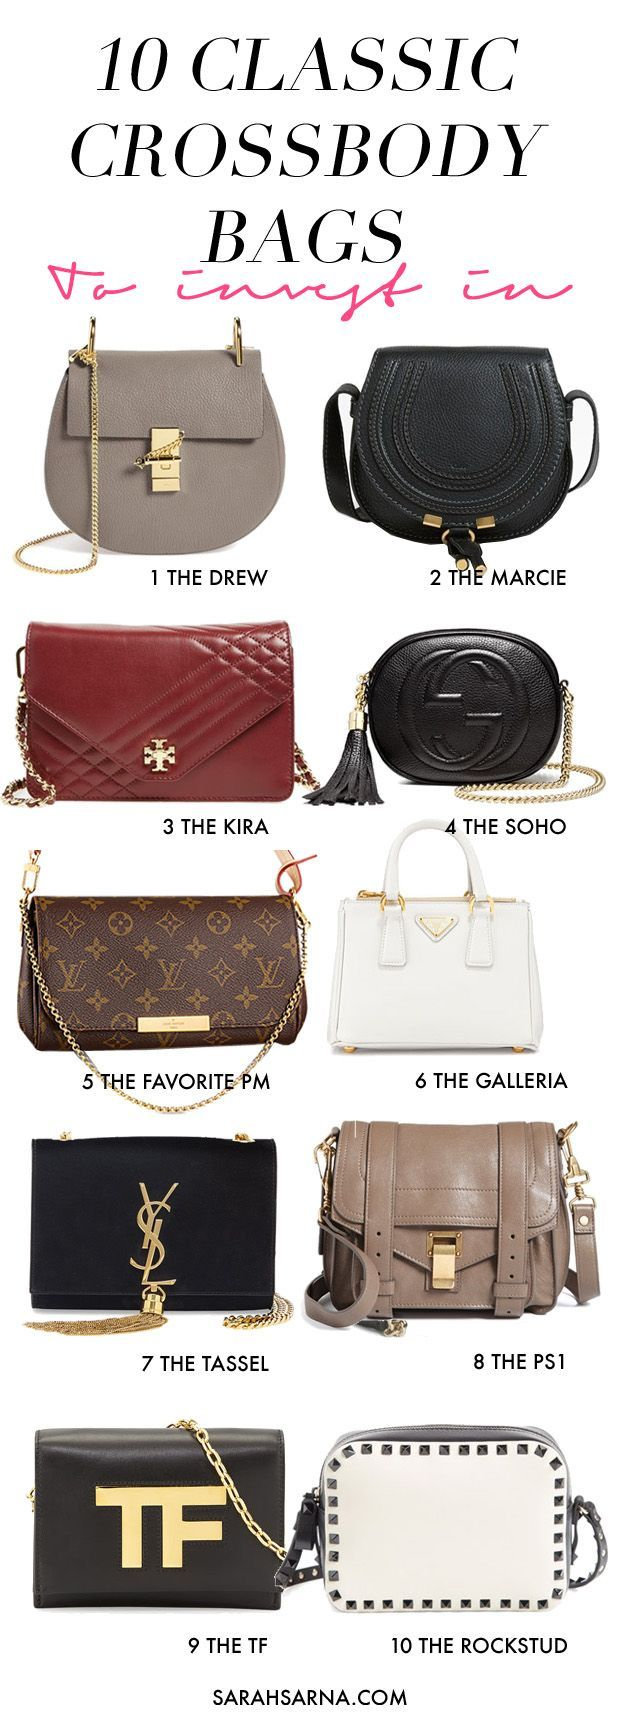 636957e7fb22 10 Classic Crossbody Bags to Invest In. Designer favorites from Chloe